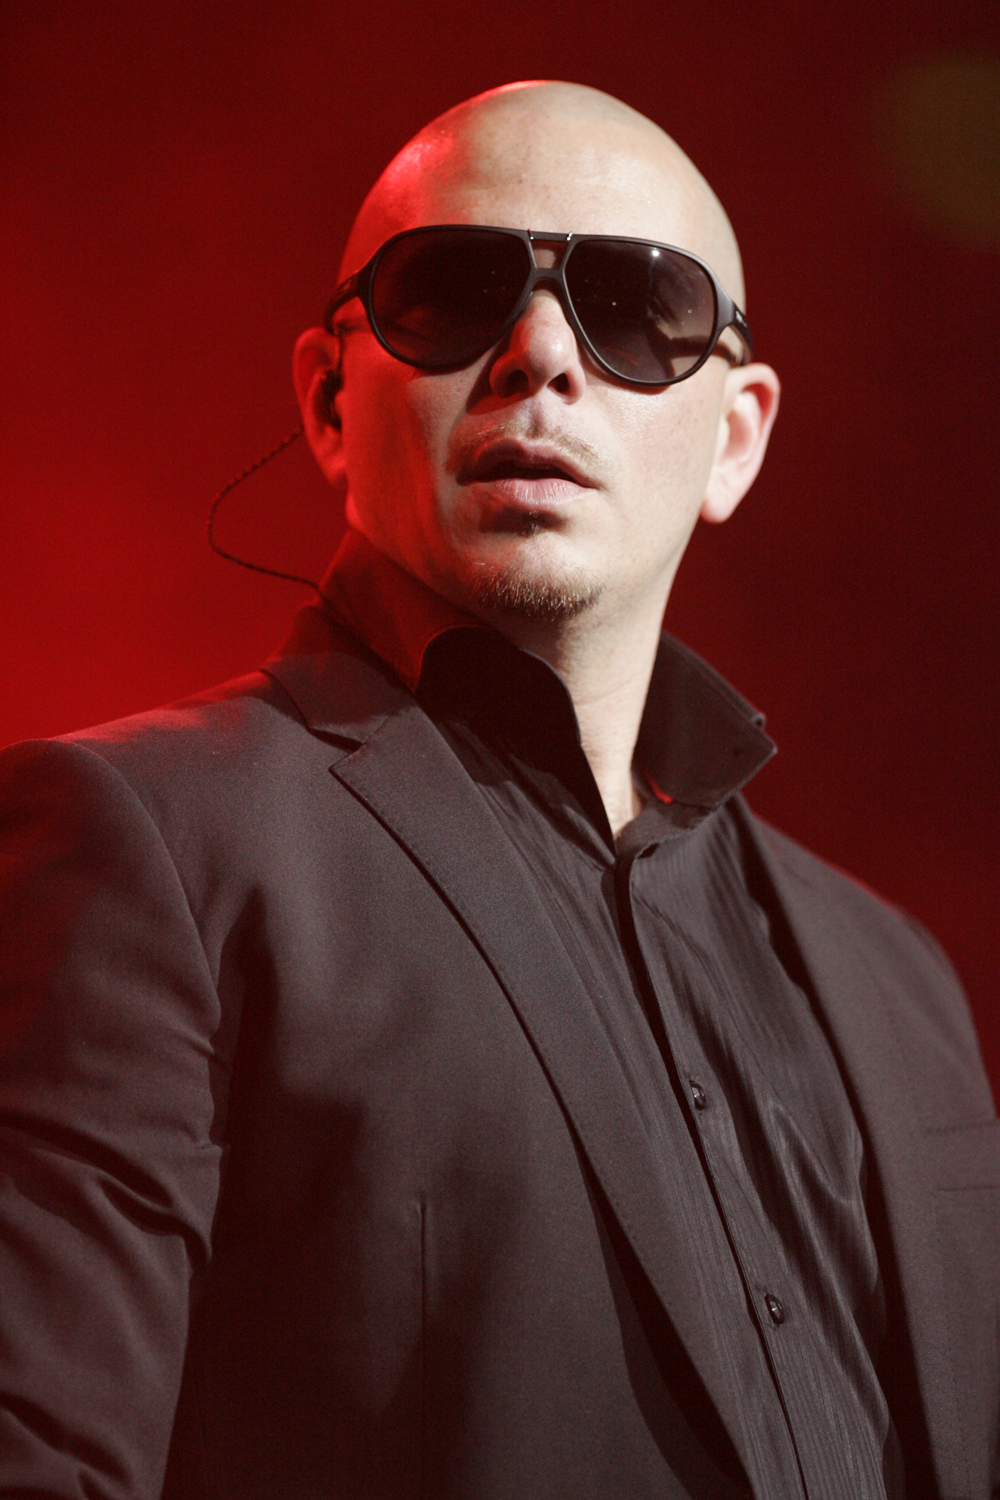 The 39-year old son of father (?) and mother Alysha Acosta Pitbull in 2020 photo. Pitbull earned a unknown million dollar salary - leaving the net worth at 50 million in 2020